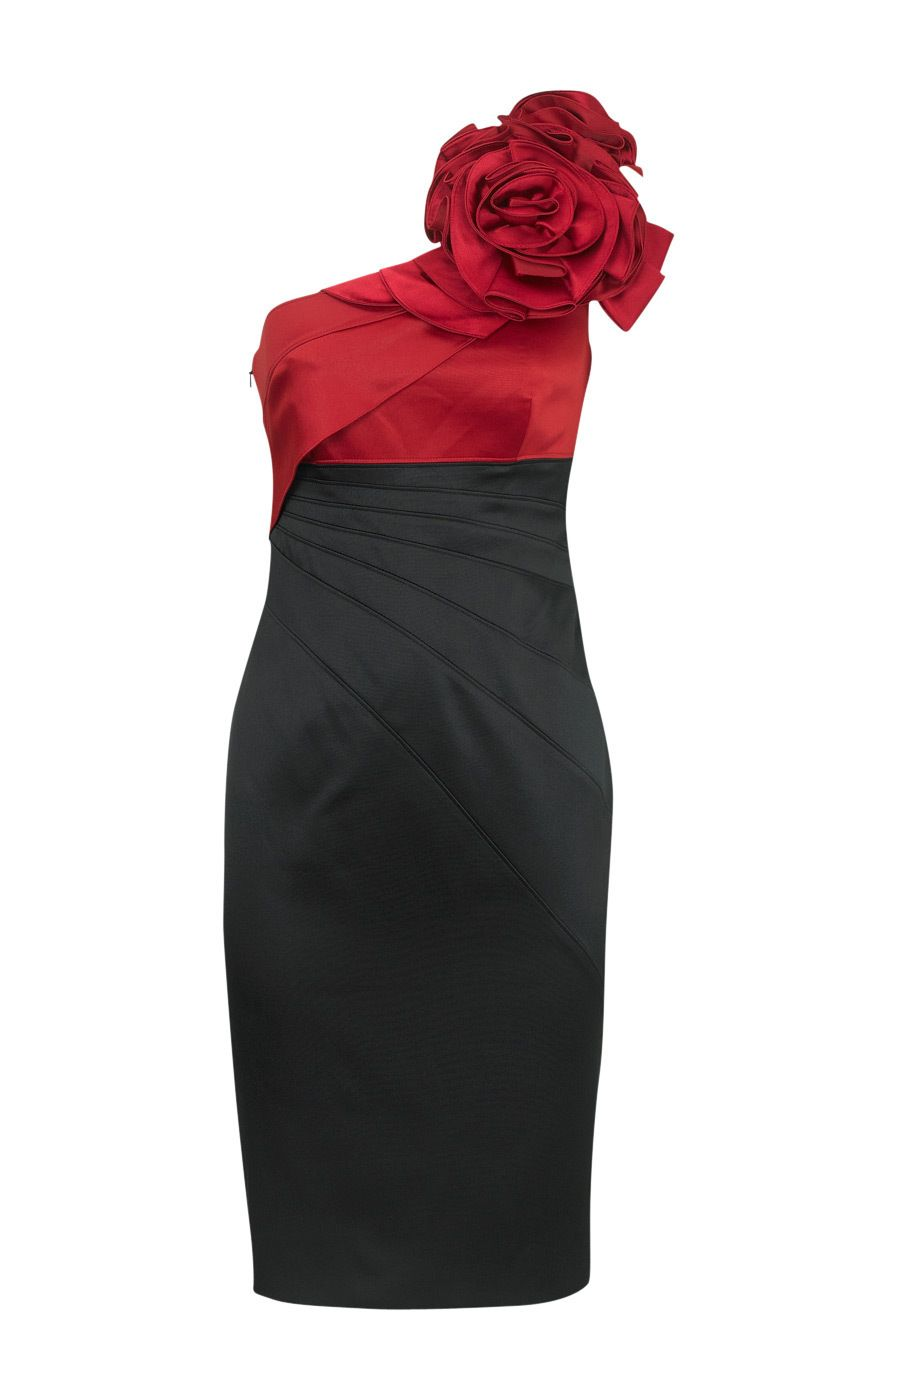 Black n red dress collection